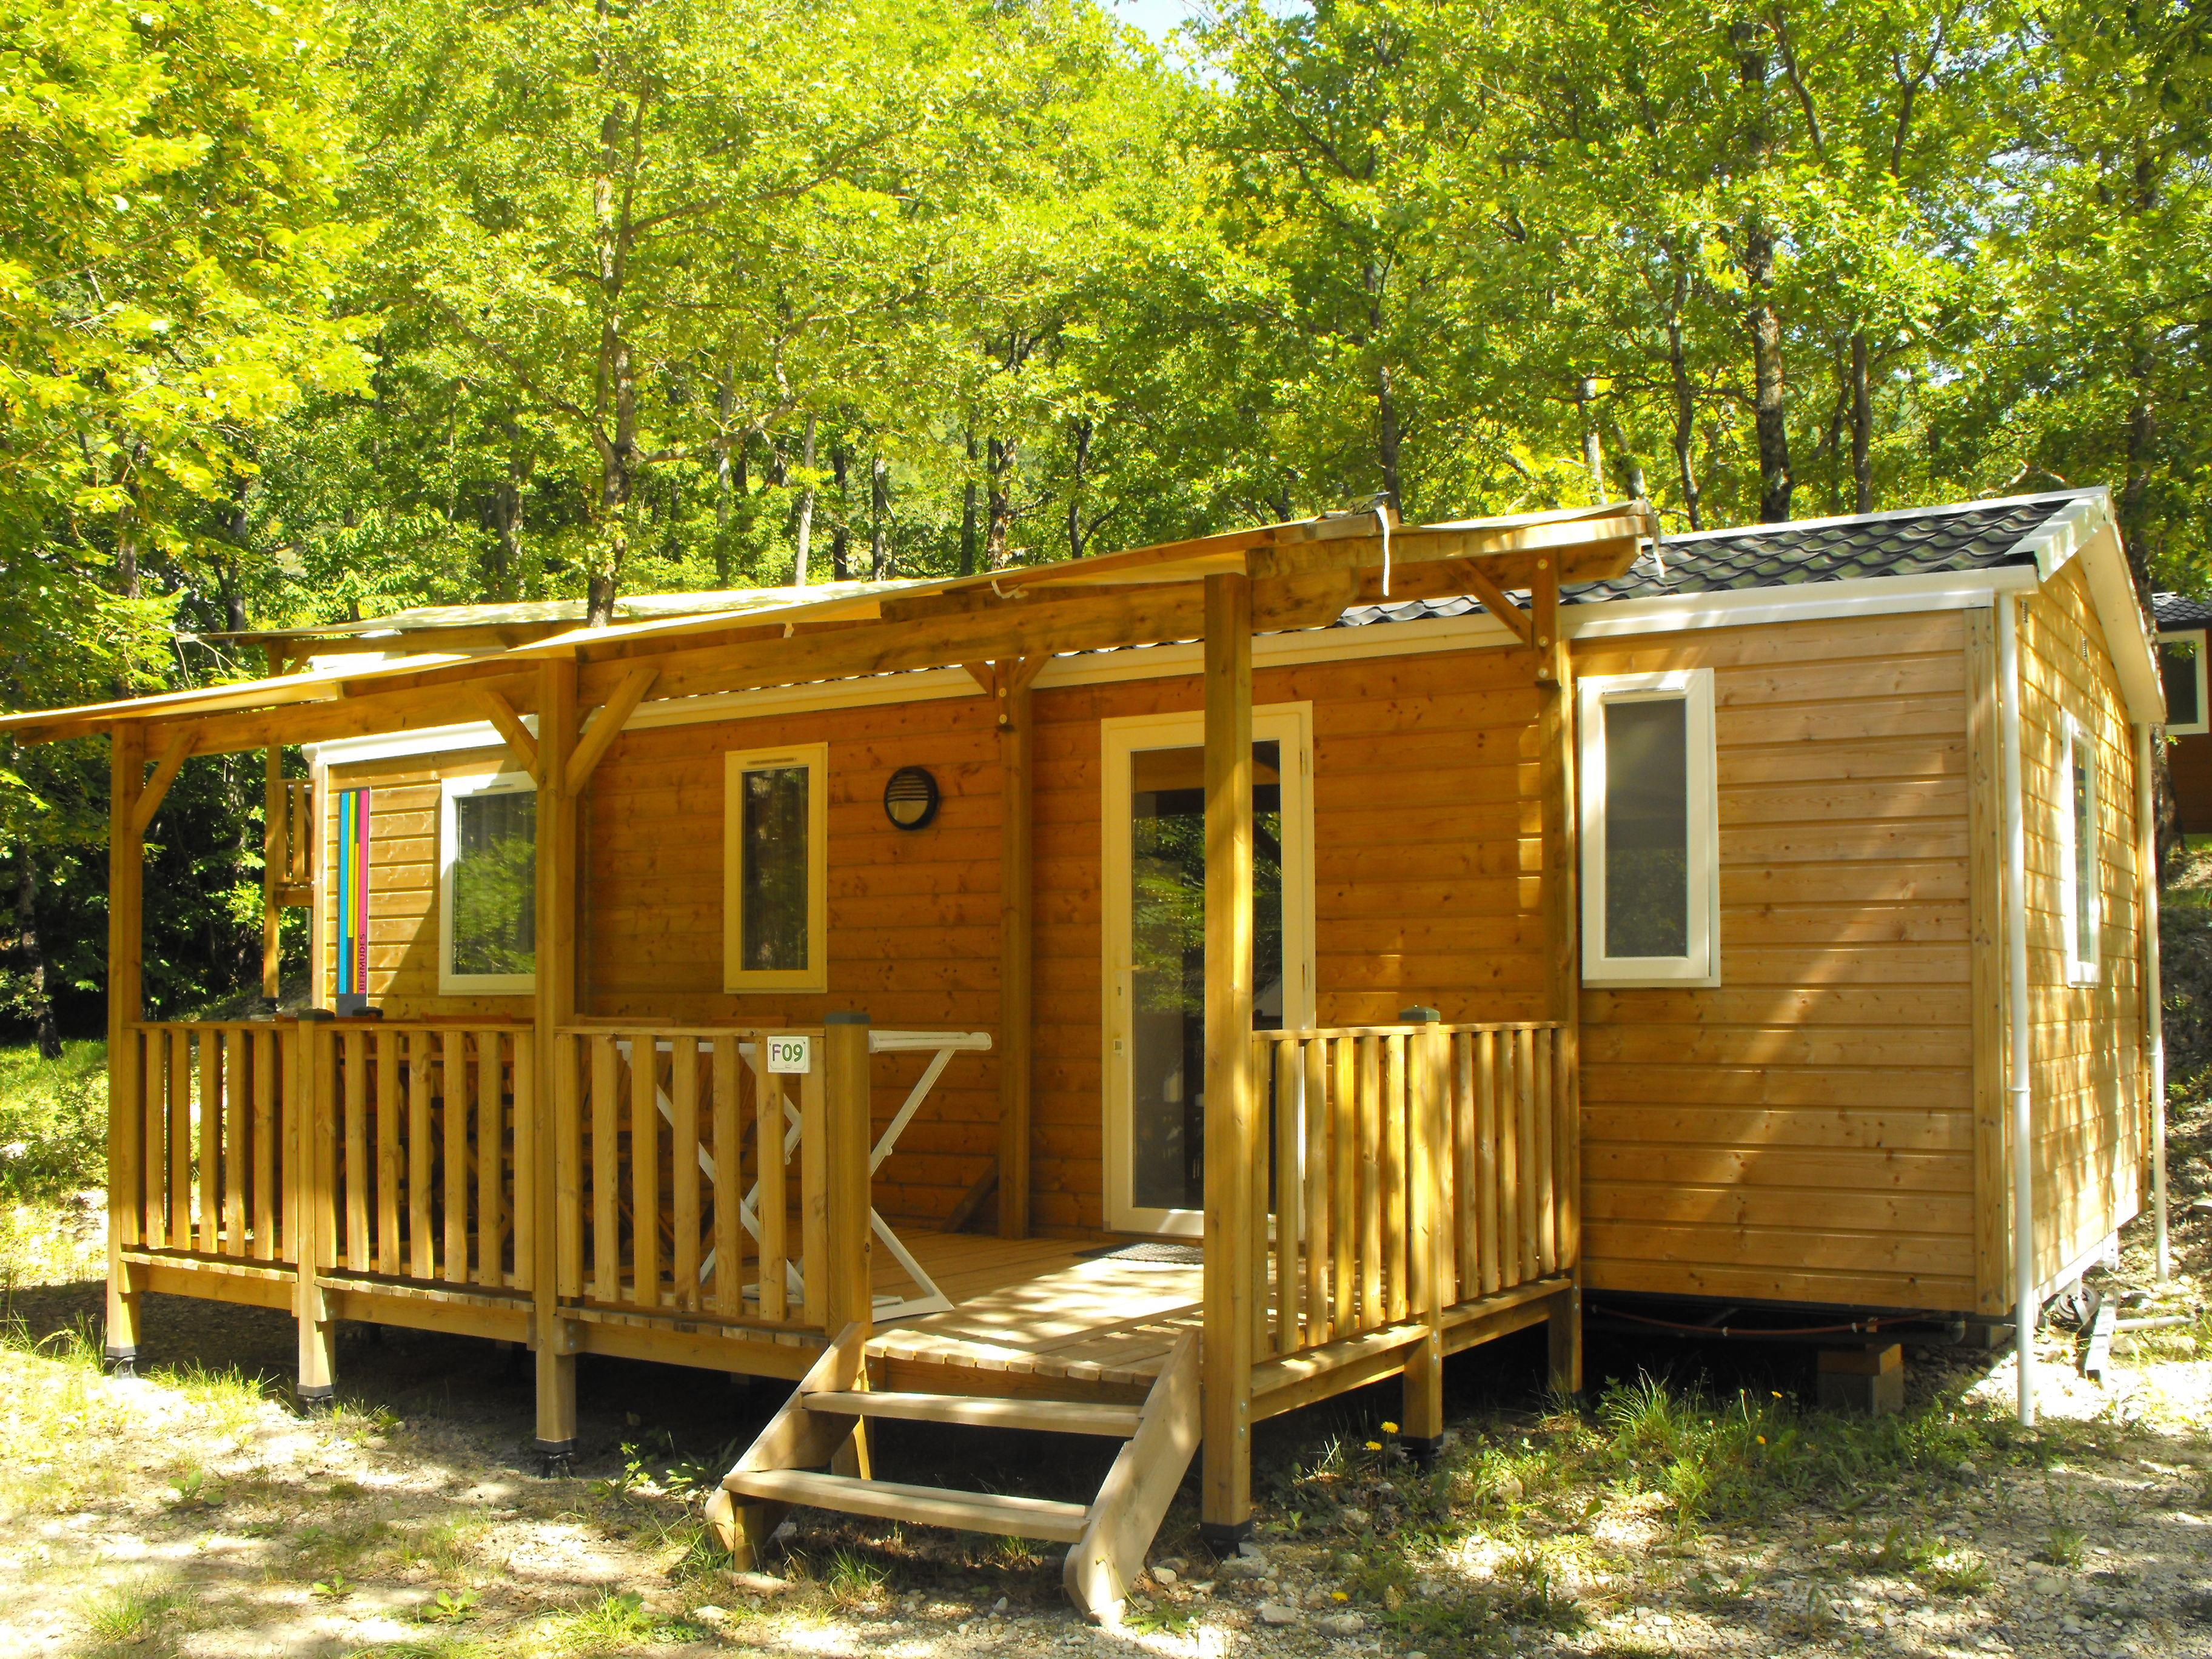 Huuraccommodatie - Mobilwood 3 Rooms - Sites et Paysages La Source du Jabron